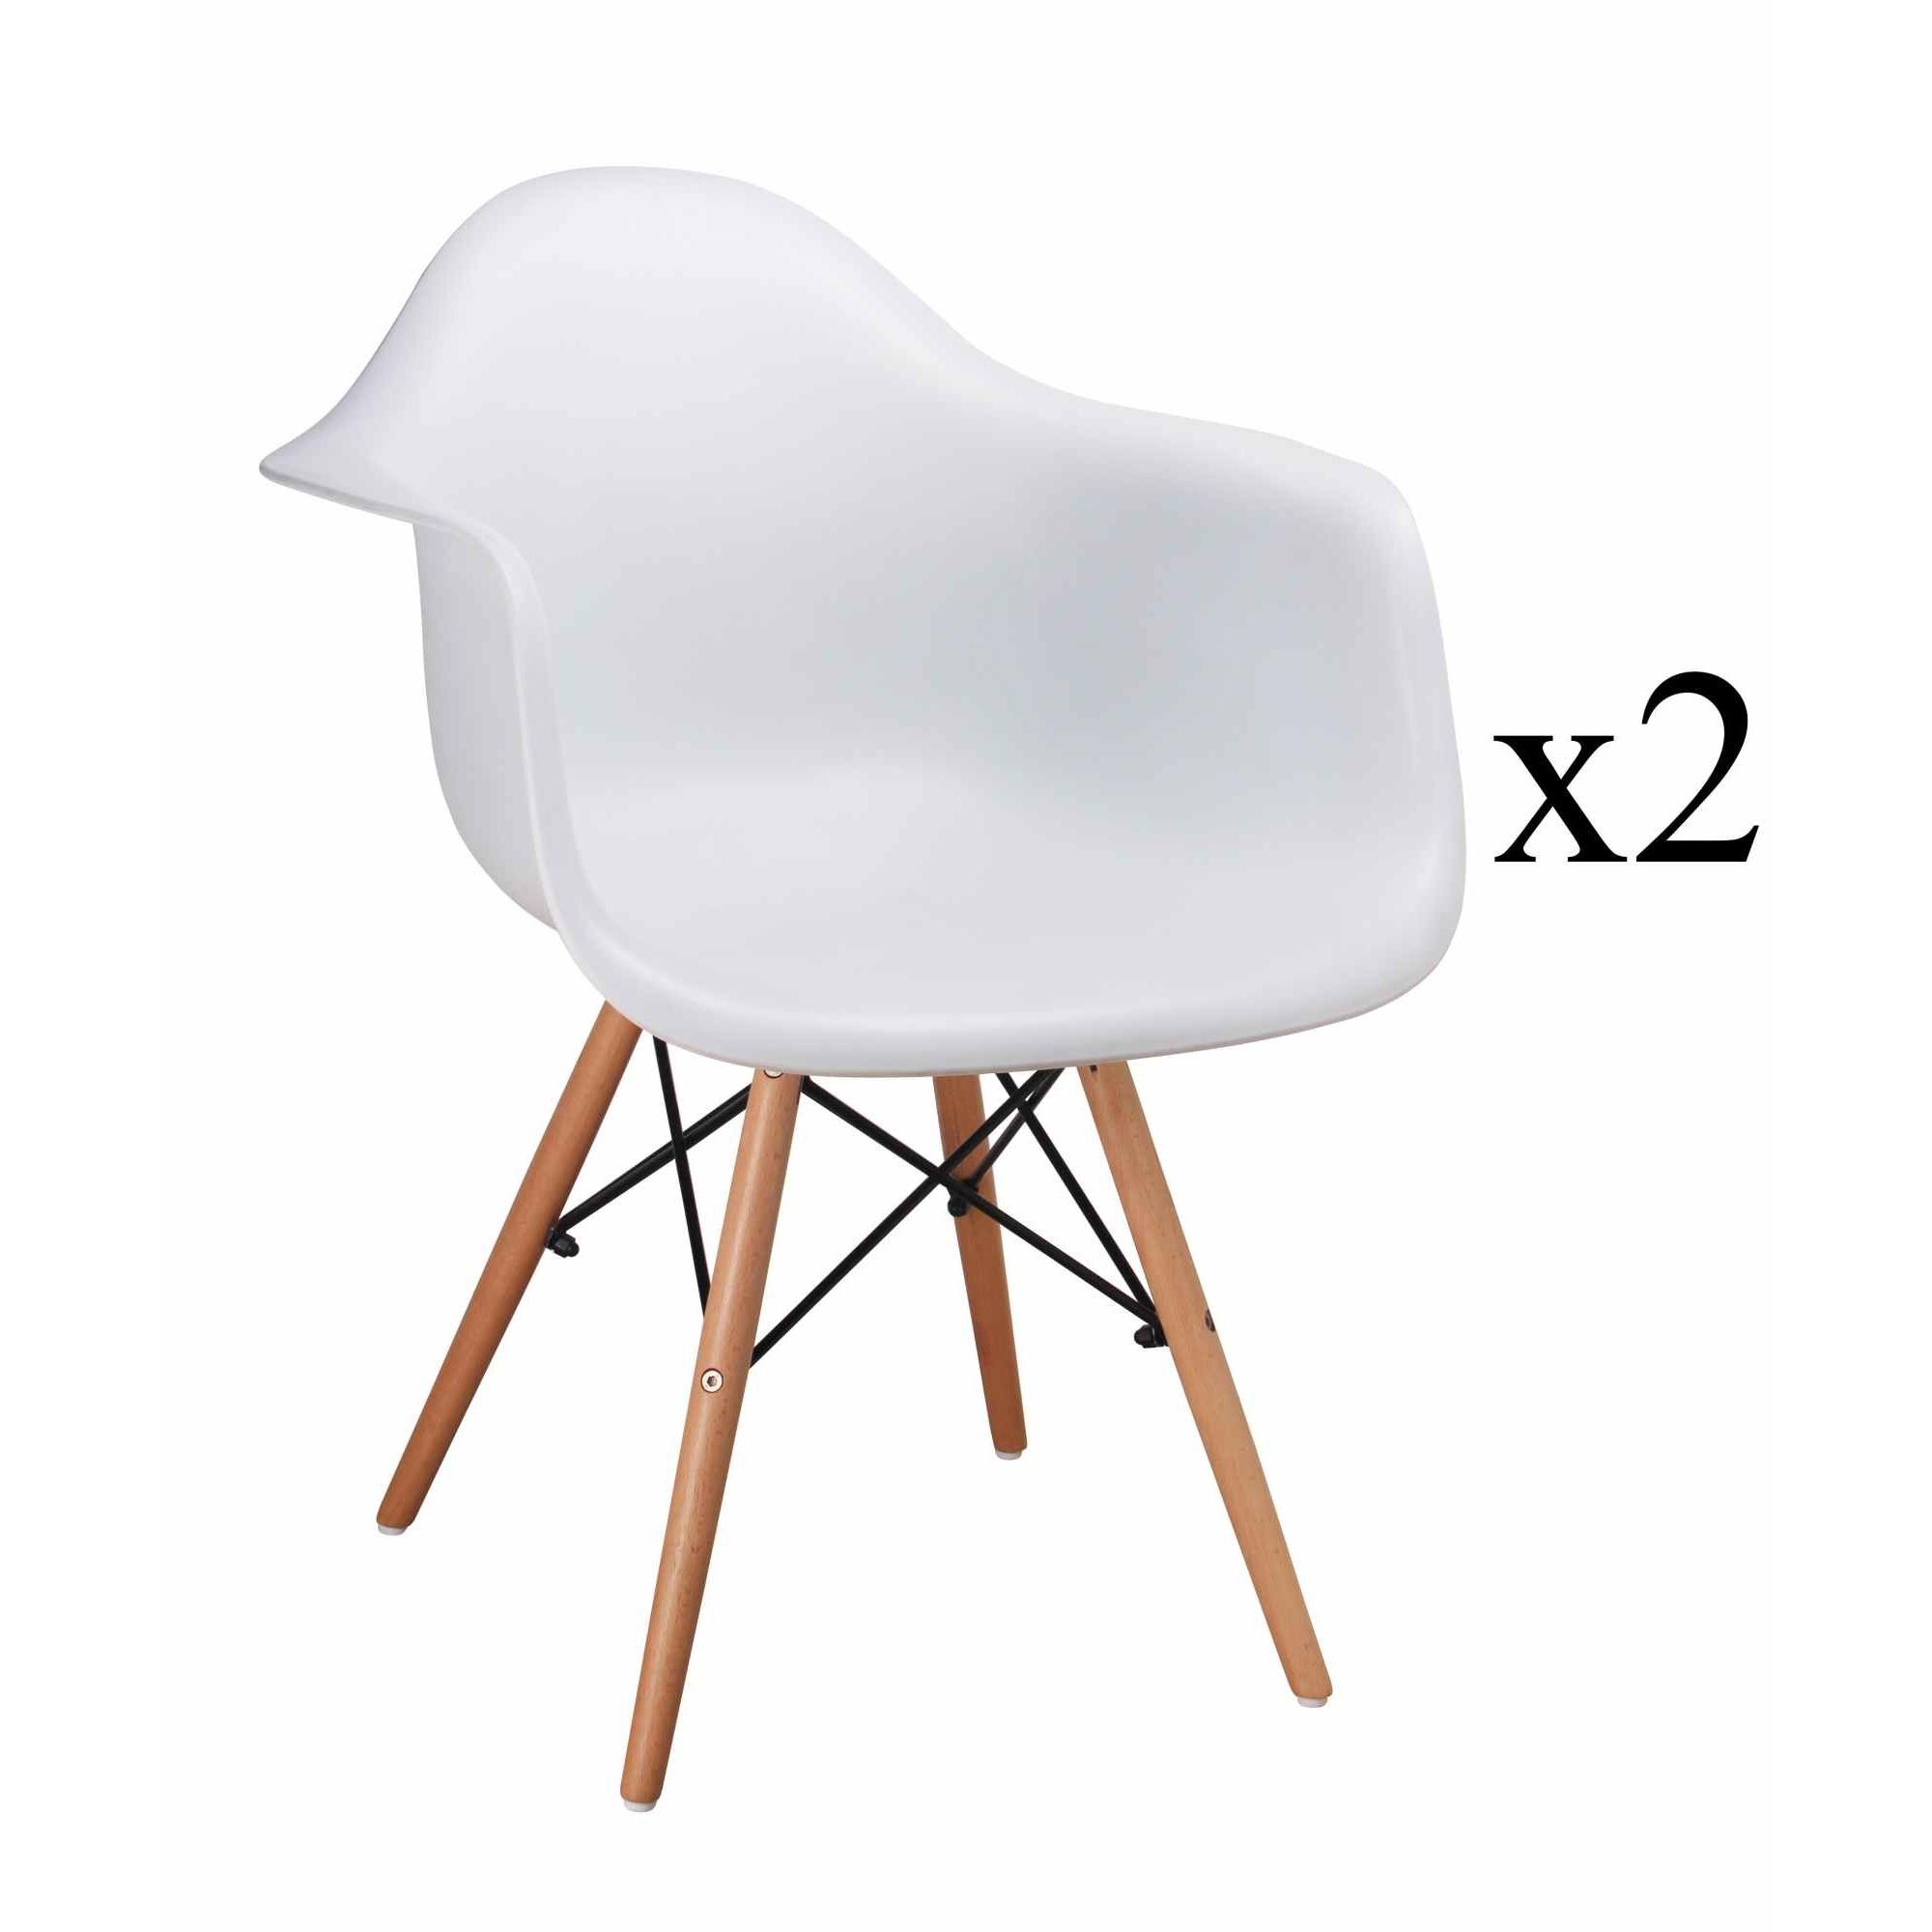 Deco in paris 2 lot de 2 chaises scandinaves blanches - Chaise confortable avec accoudoirs ...